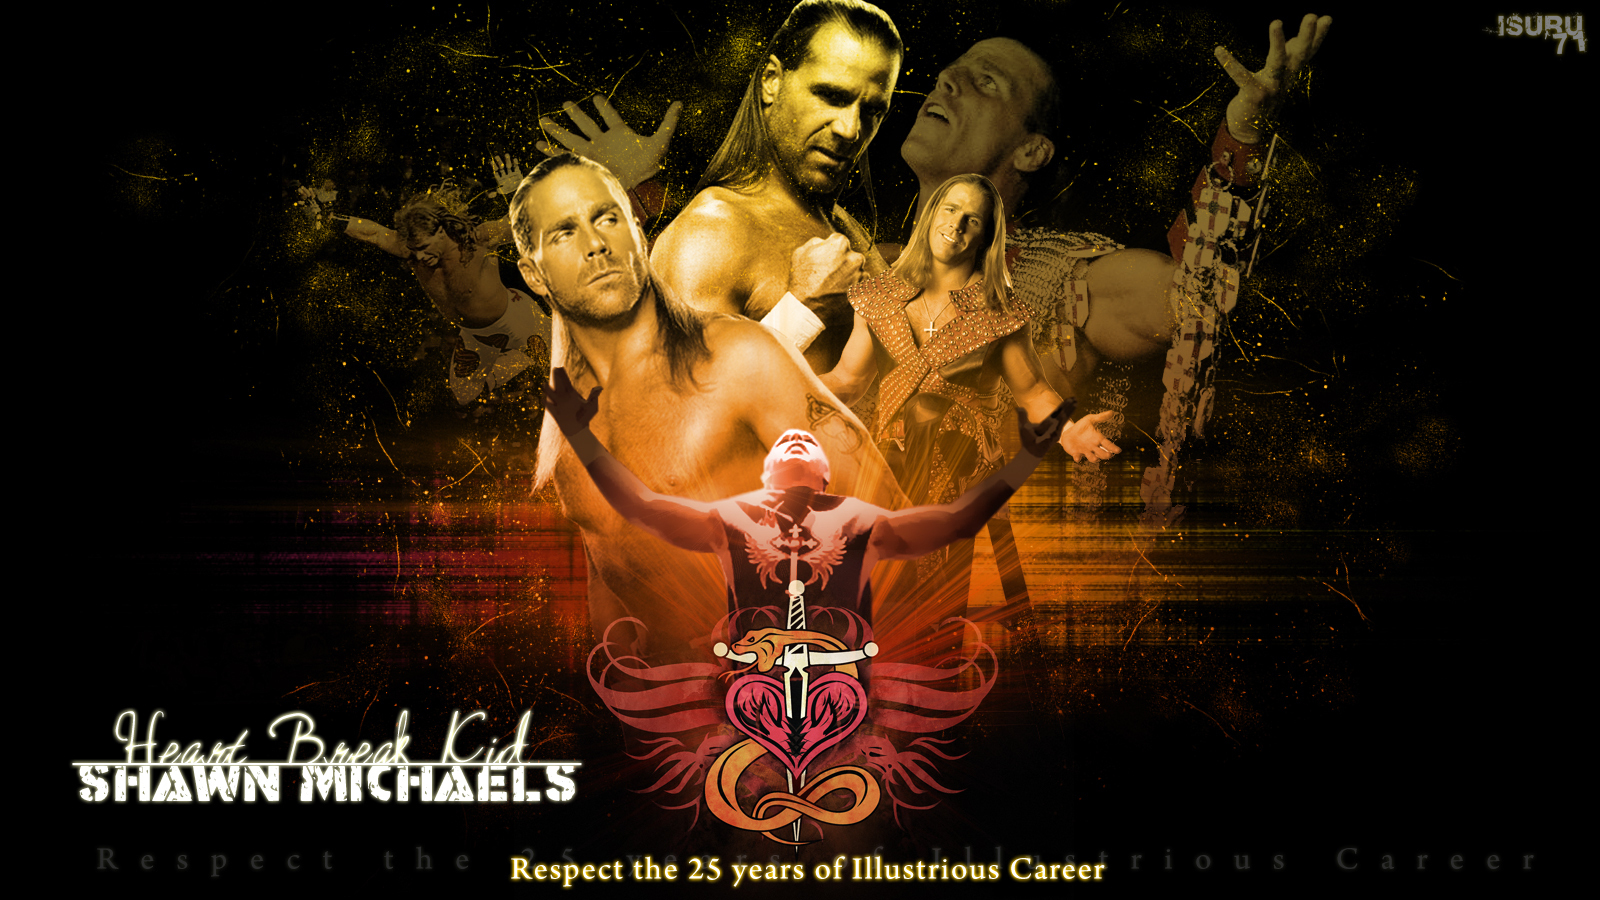 HBK   Shawn Michaels Wallpaper 15403333 1600x900